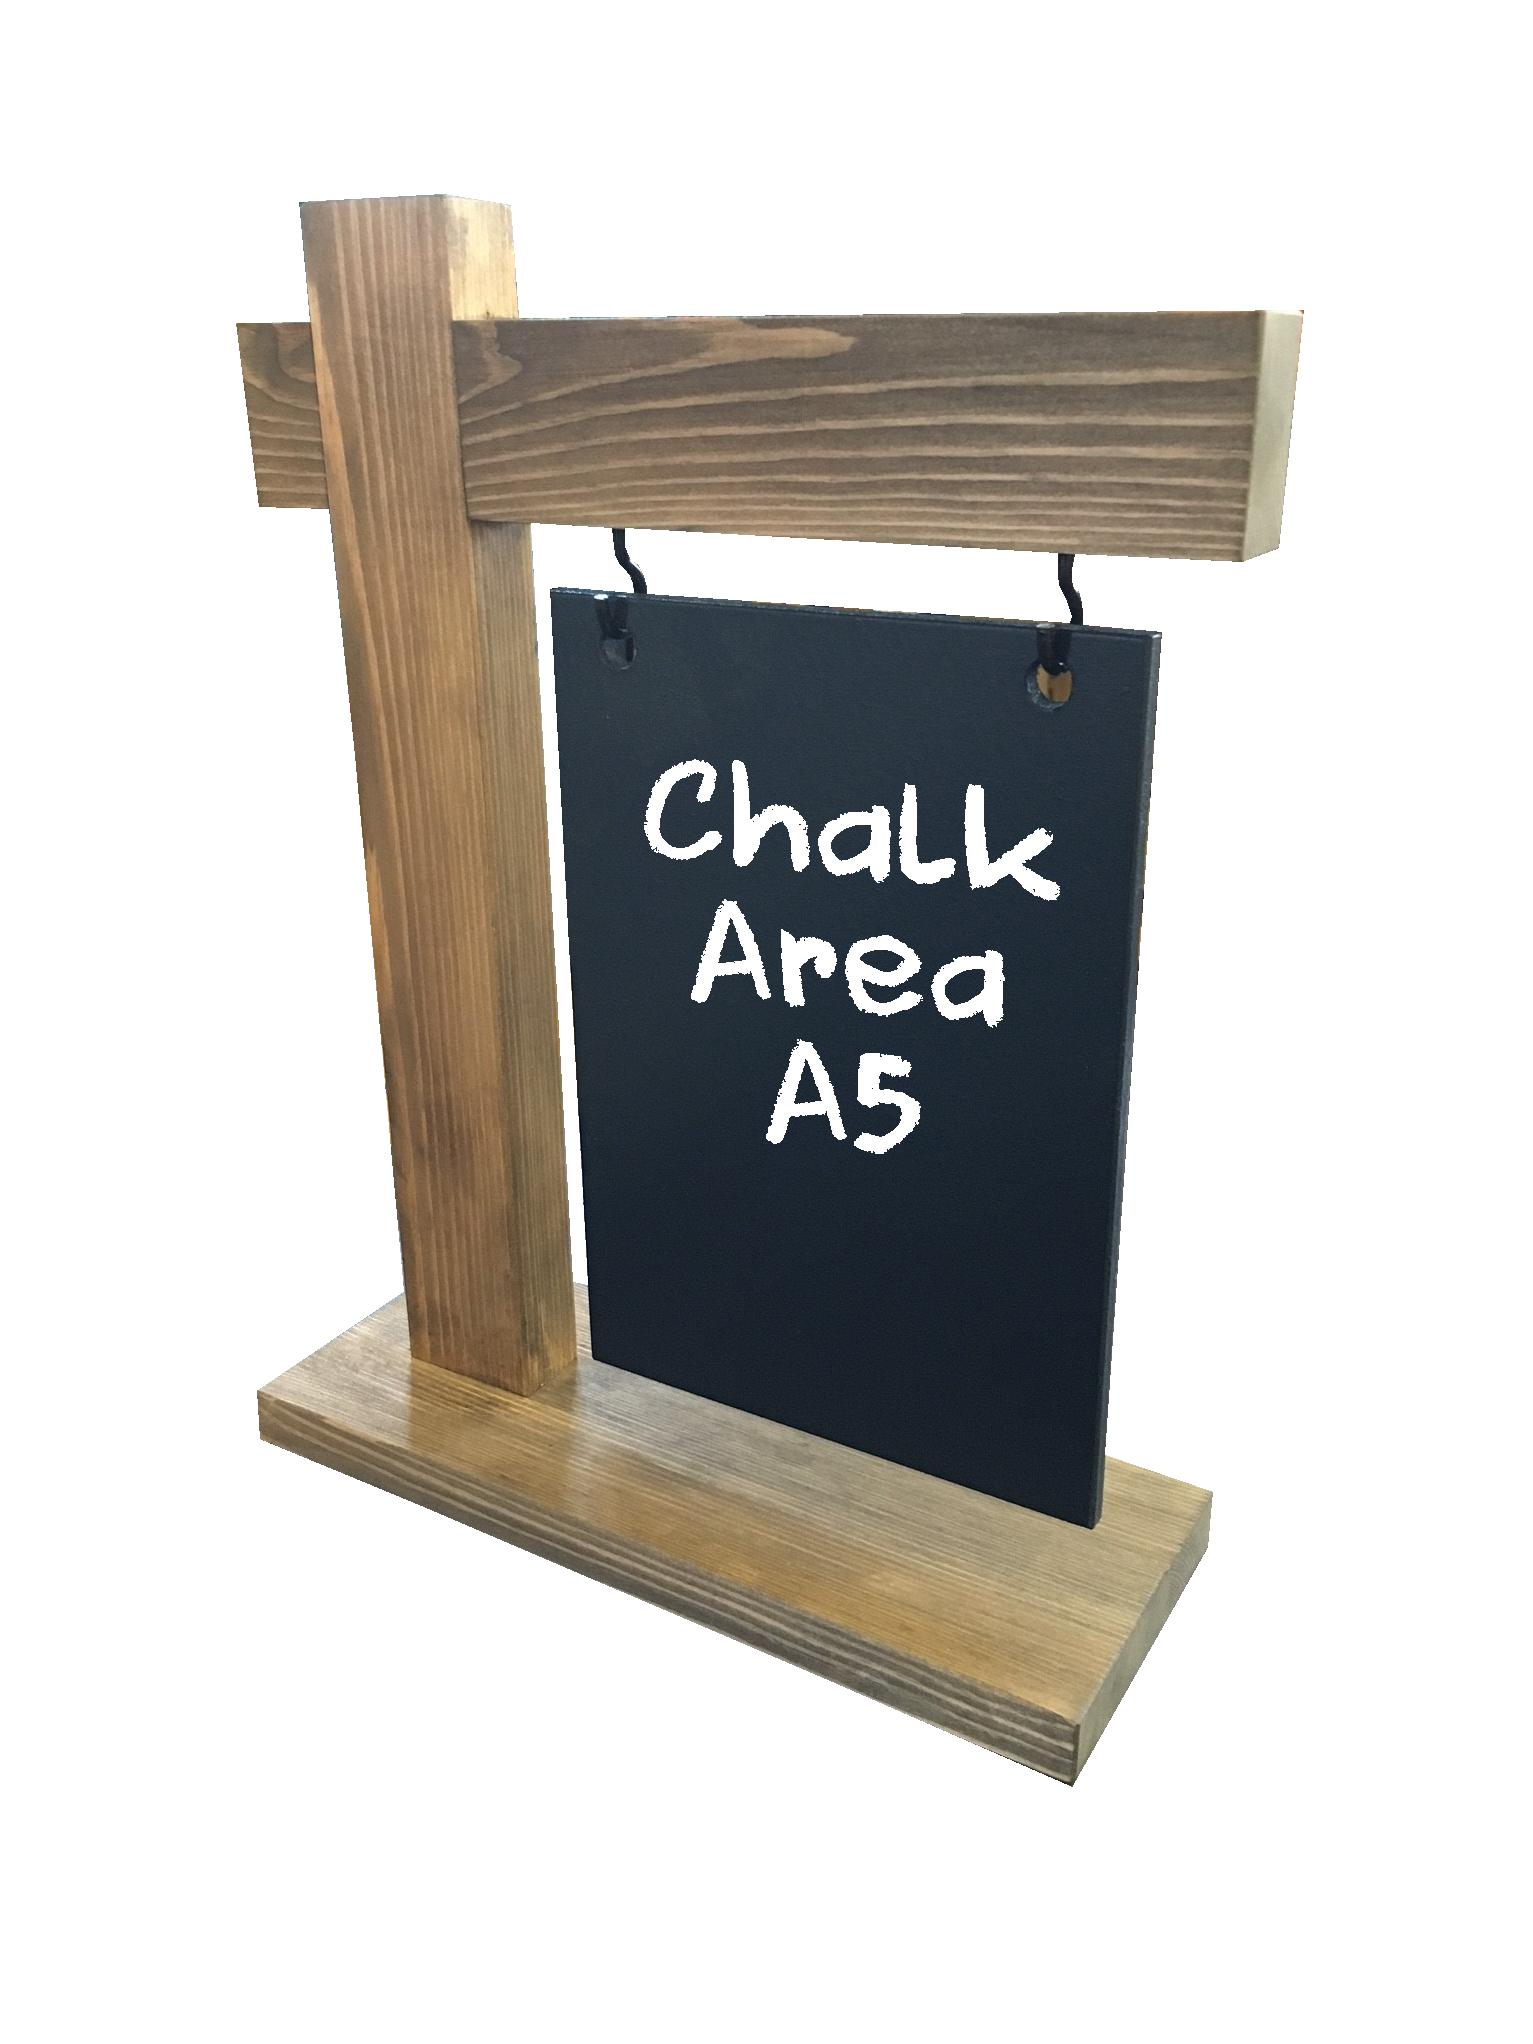 A5 Hanging Chalkboard